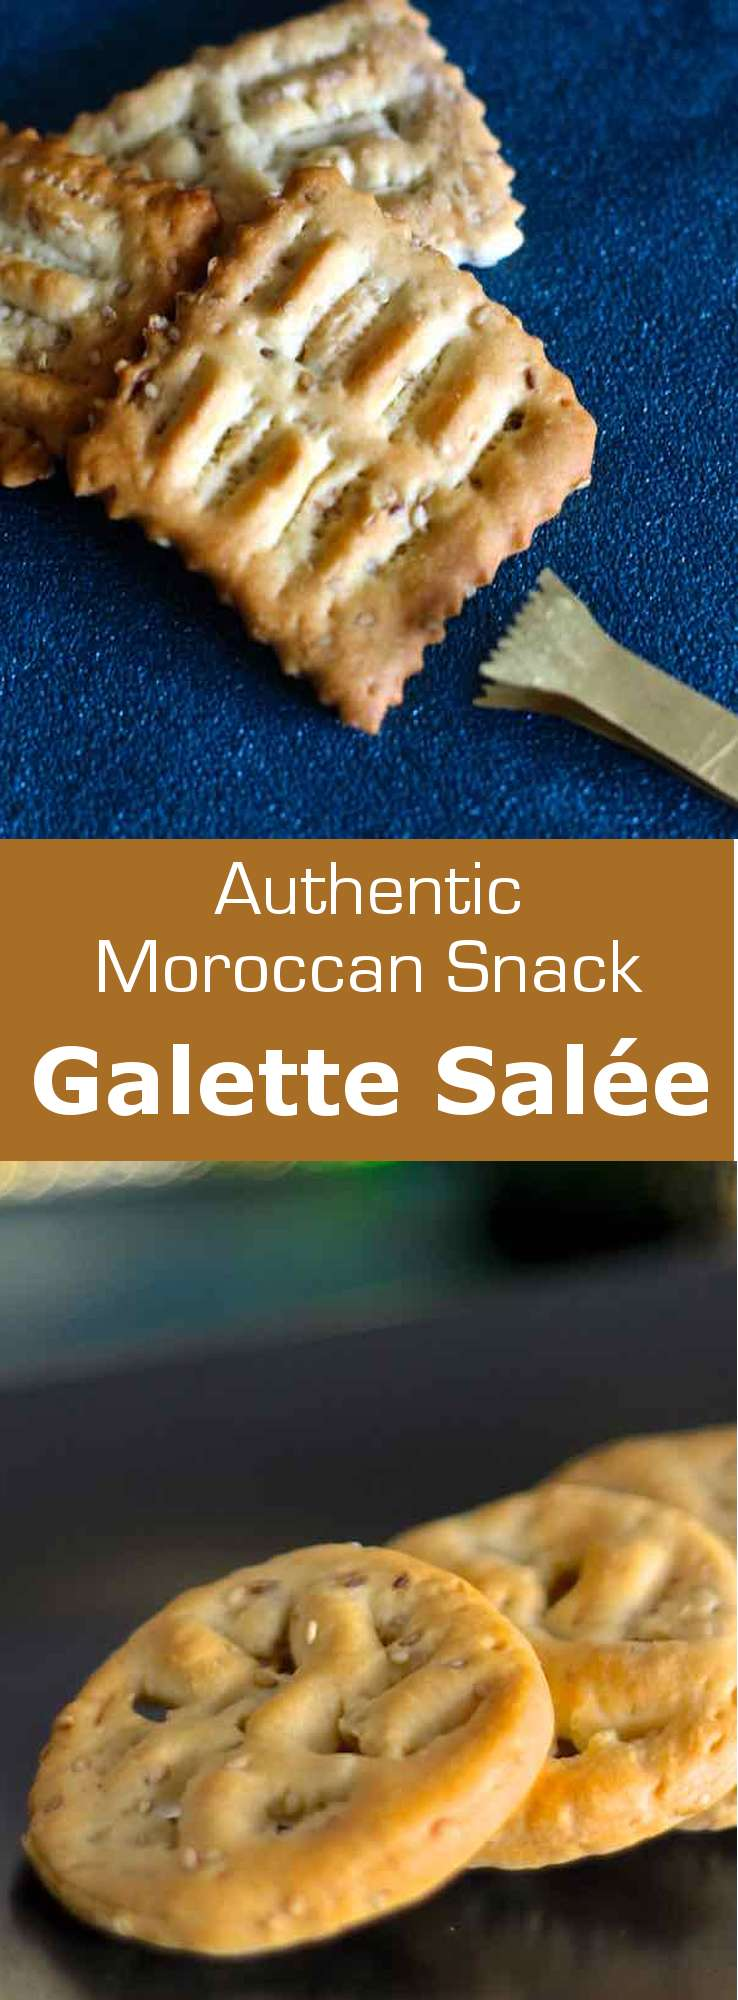 Galettes salées (savory crackers) are a Jewish recipe from Morocco. They are traditionally garnished with aniseed and sesame seeds. #Morocco #Moroccan #196flavors